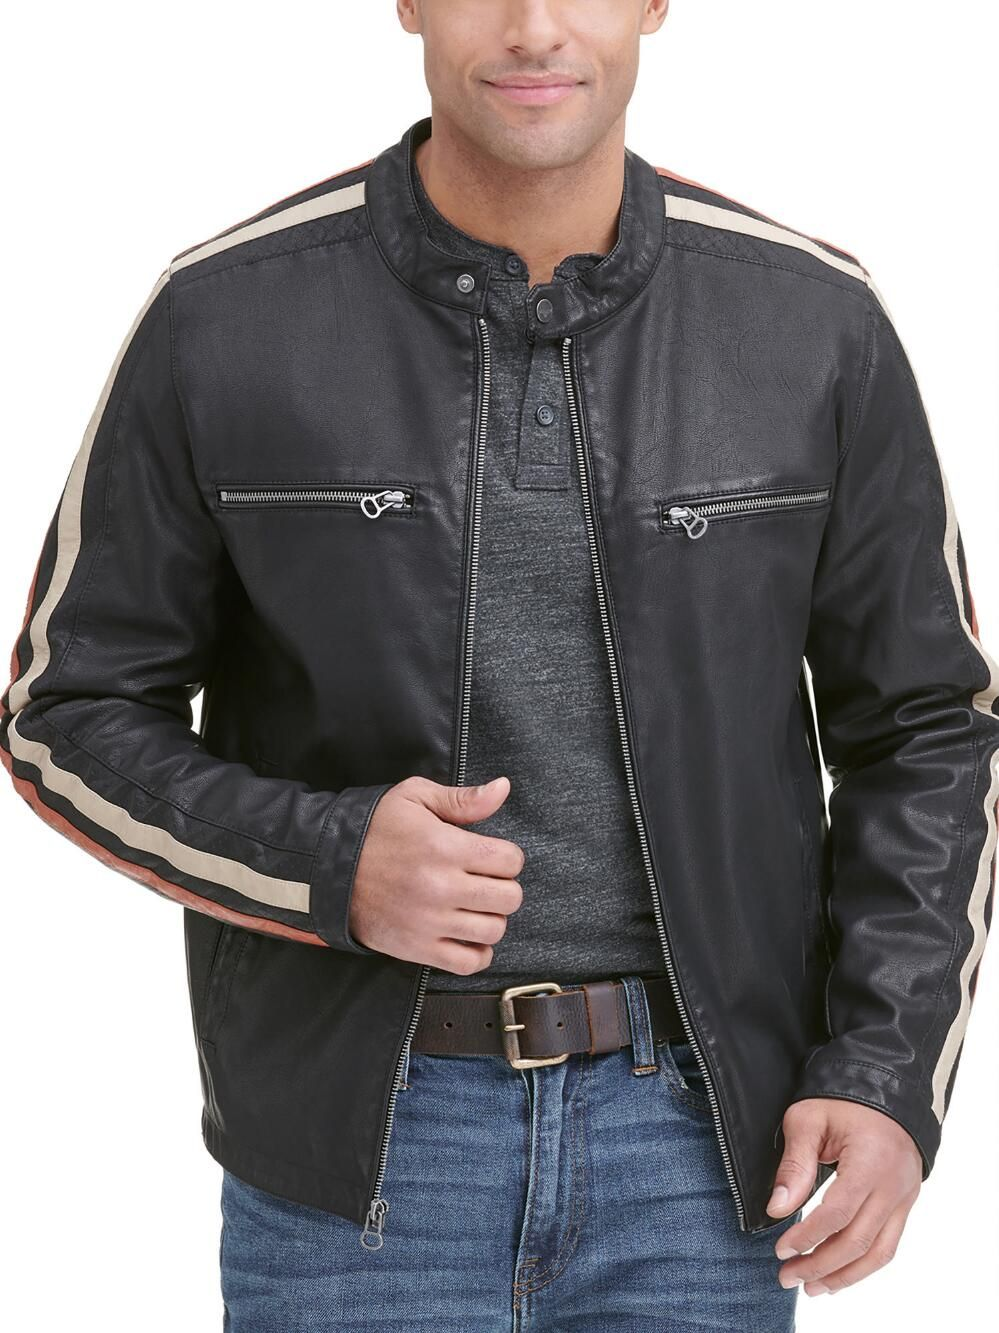 FauxLeather Jacket with Stripe (With images) Faux